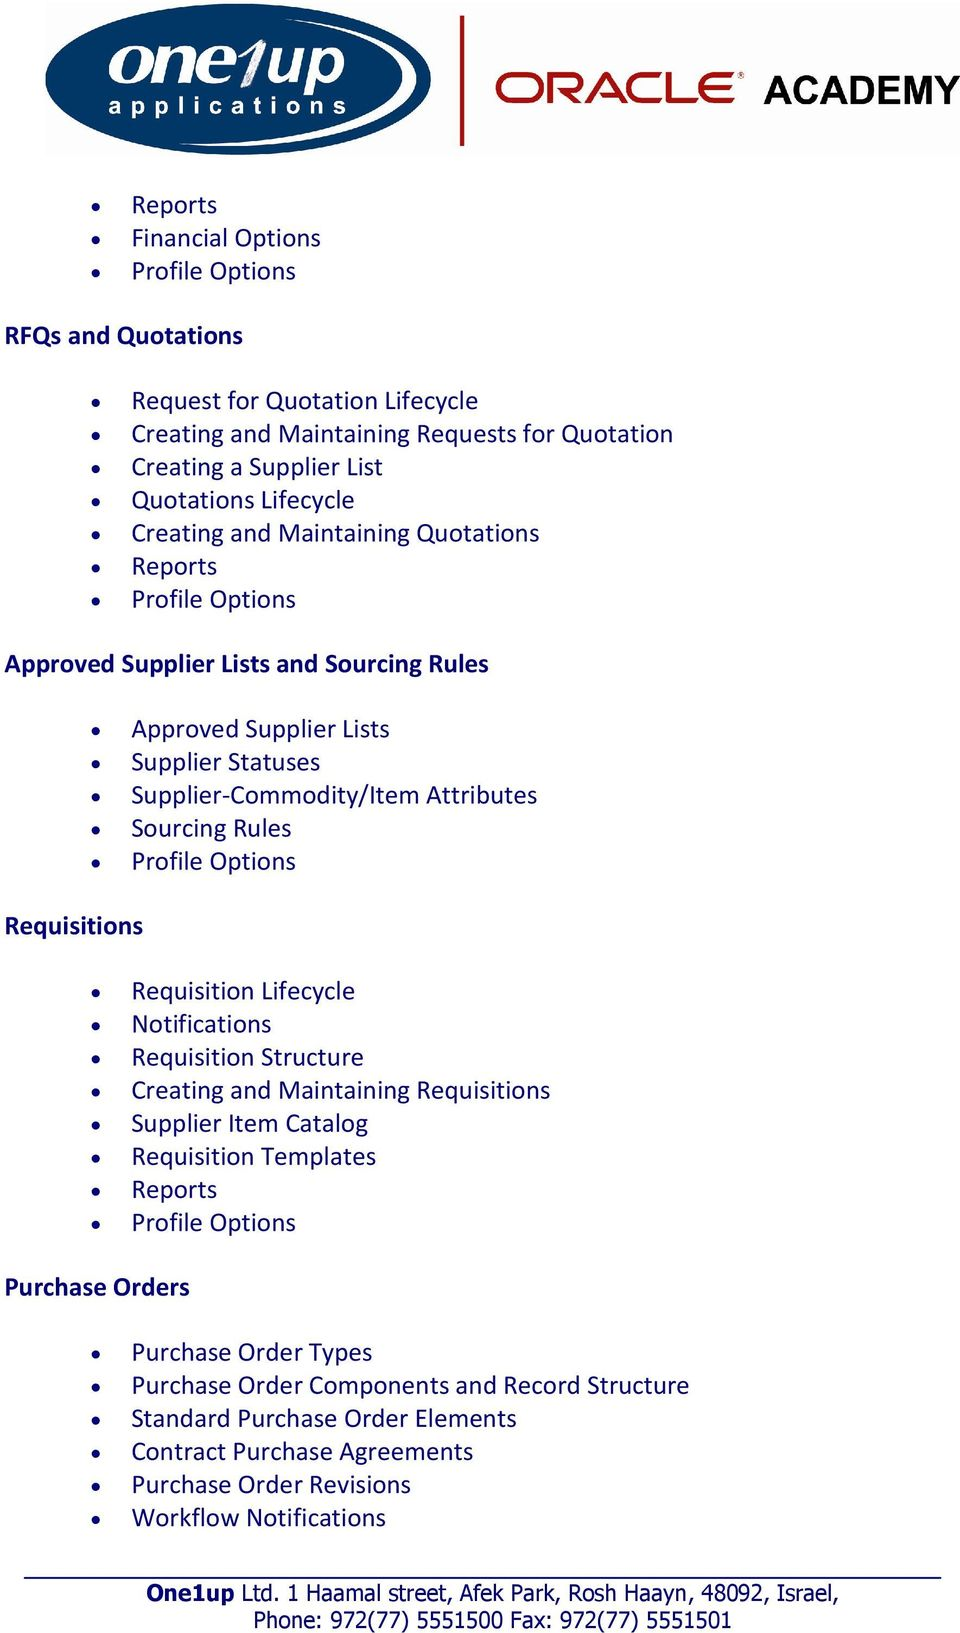 Sourcing Rules Requisition Lifecycle Notifications Requisition Structure  Creating and Maintaining Requisitions Supplier Item Catalog Requisition  Templates